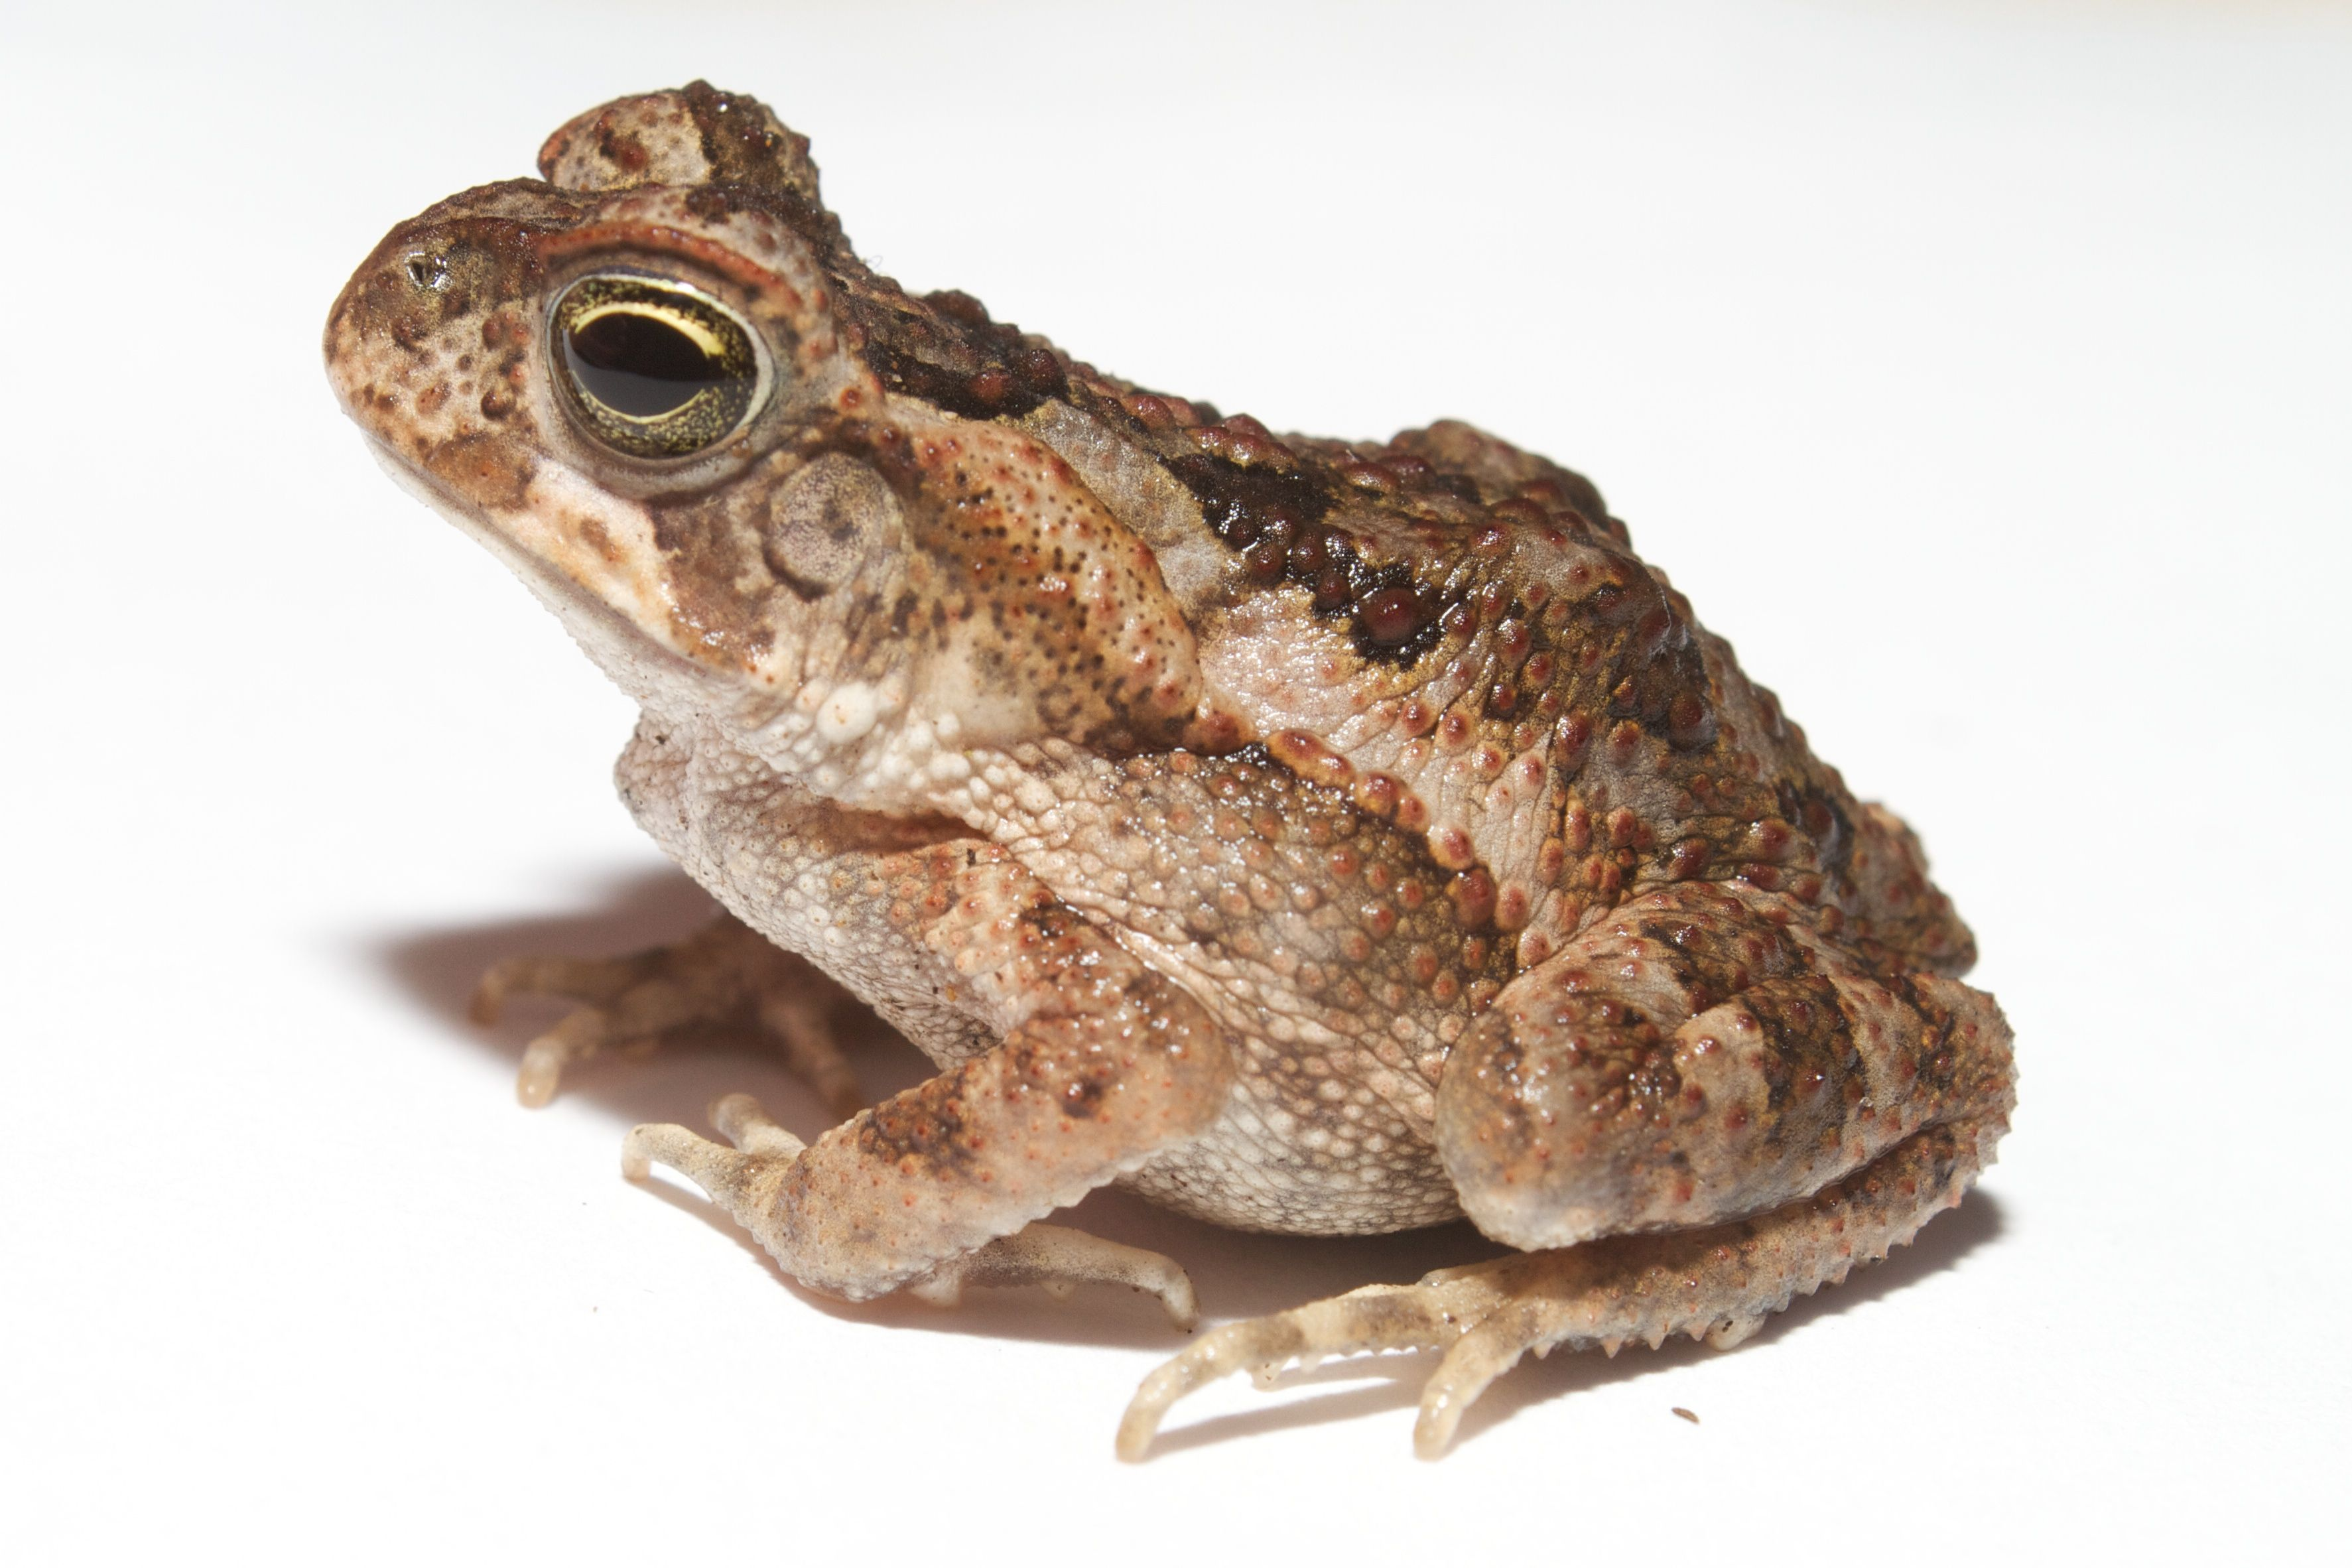 All about frogs